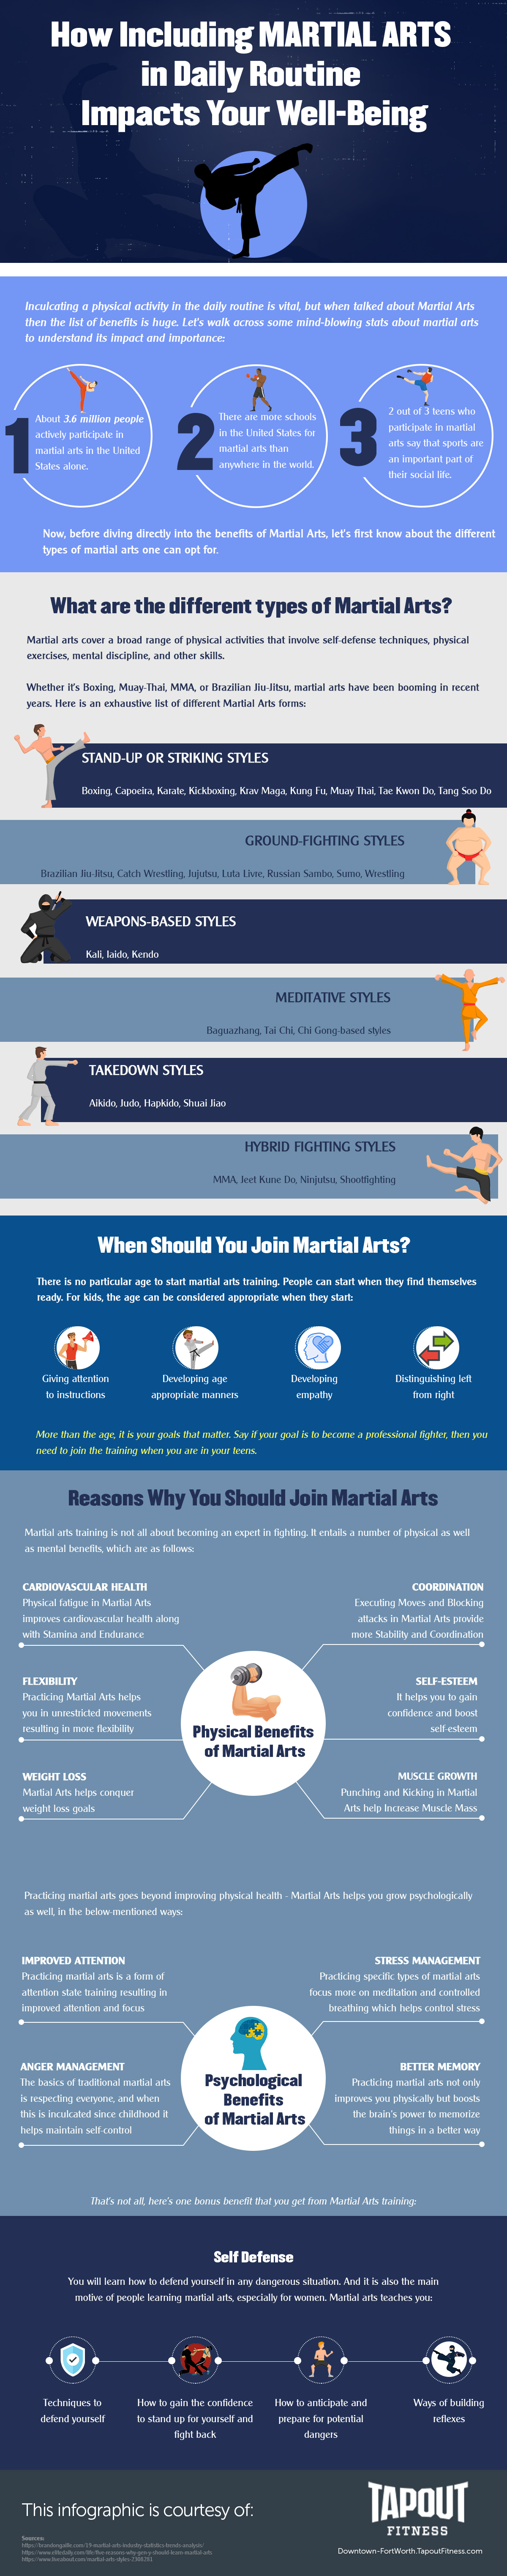 How martial arts can improve your well-being